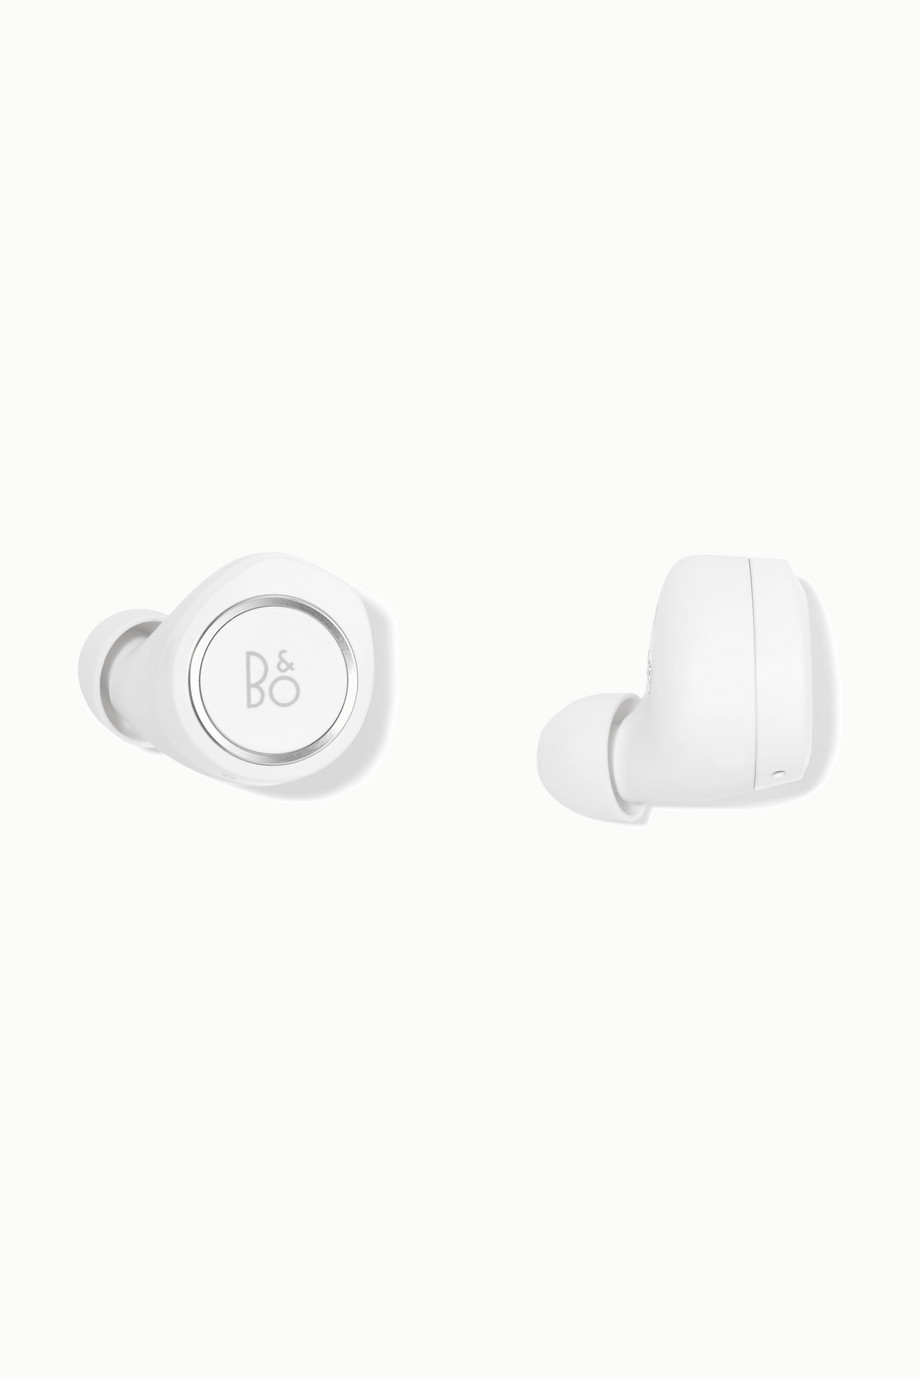 Bang & Olufsen Beoplay E8 kabellose In-Ear-Kopfhörer